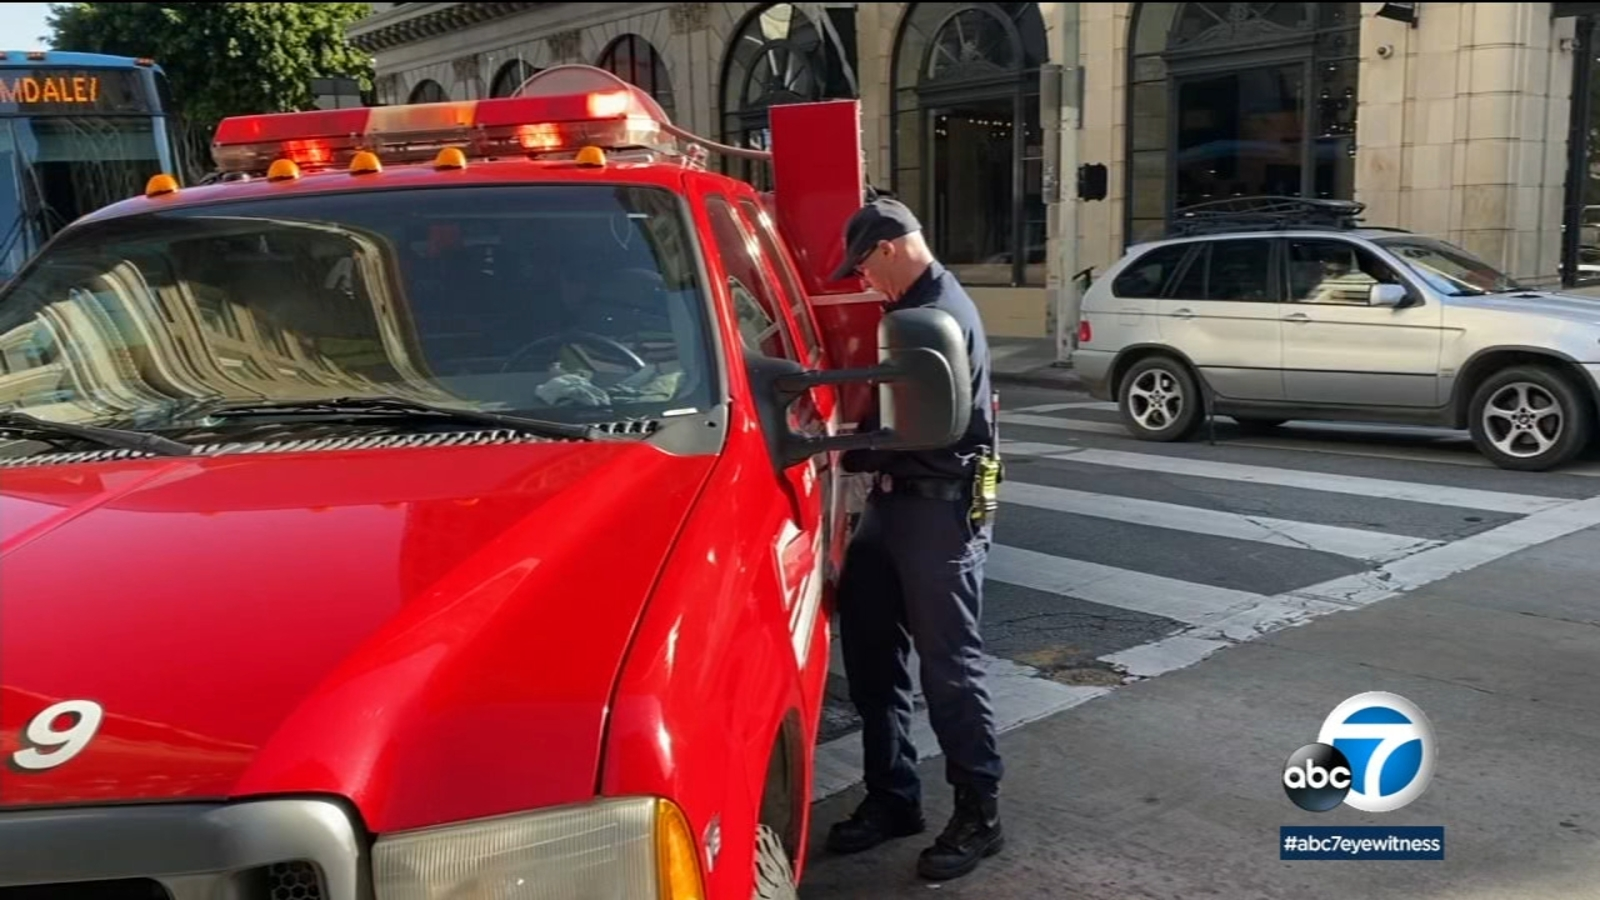 LAFD's Fast Response Vehicles help cut down on response time